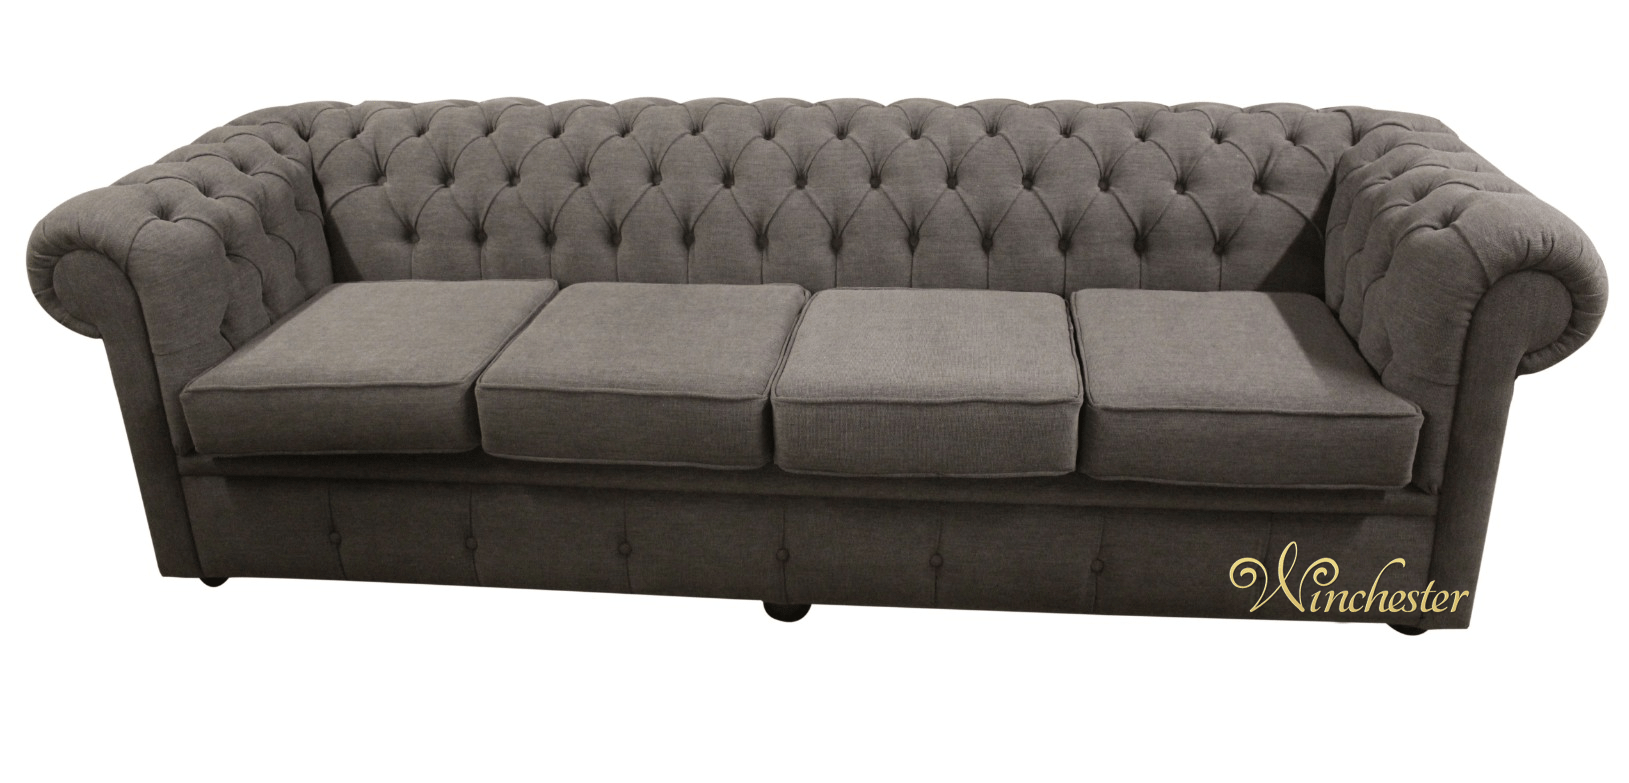 4 Seater Chesterfield Corner Sofa Chesterfield-4-seater-settee-verity-steel-grey-fabric-wc.png